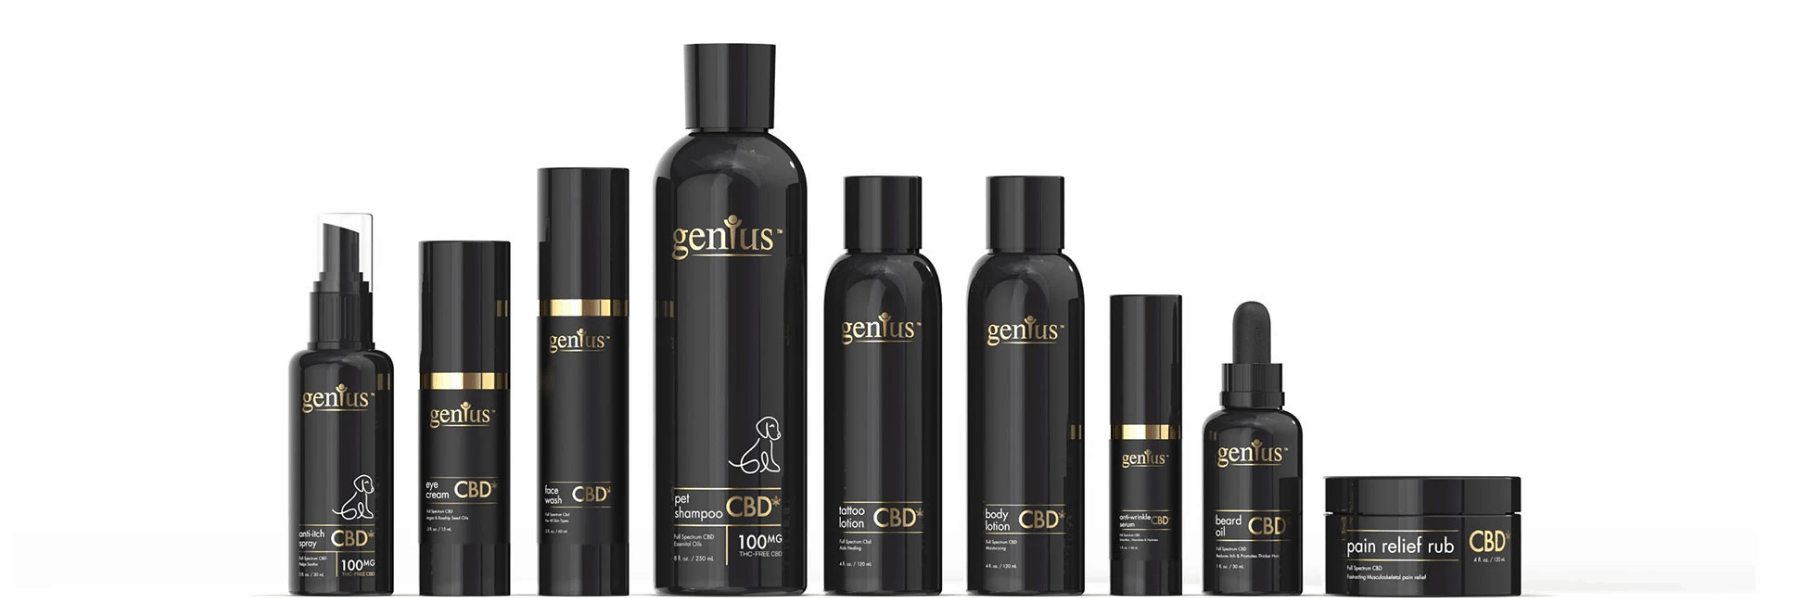 Genius Karma CBD Coupons Our Product Range